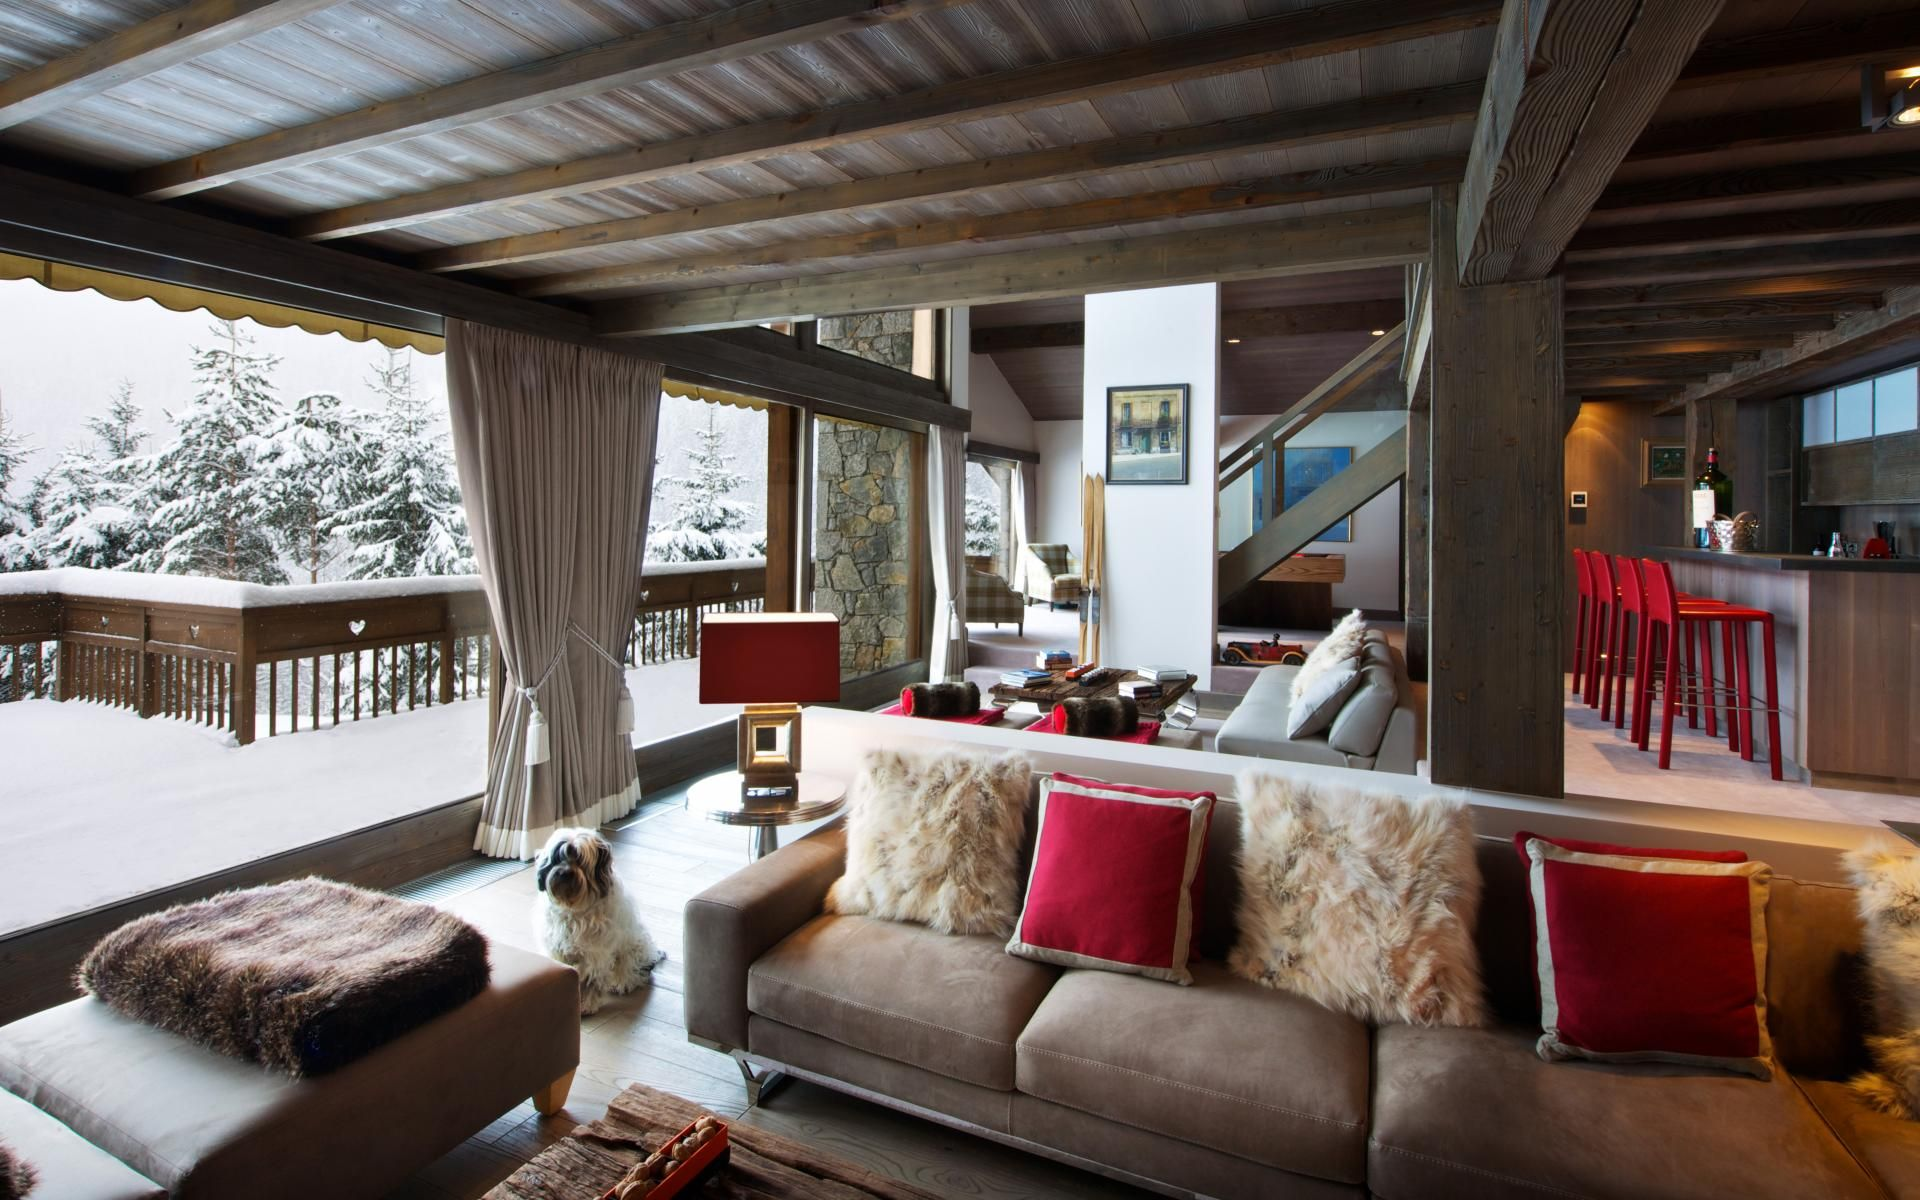 Contemporary chic at the luxury chalet Les Brames in Meribel, France.